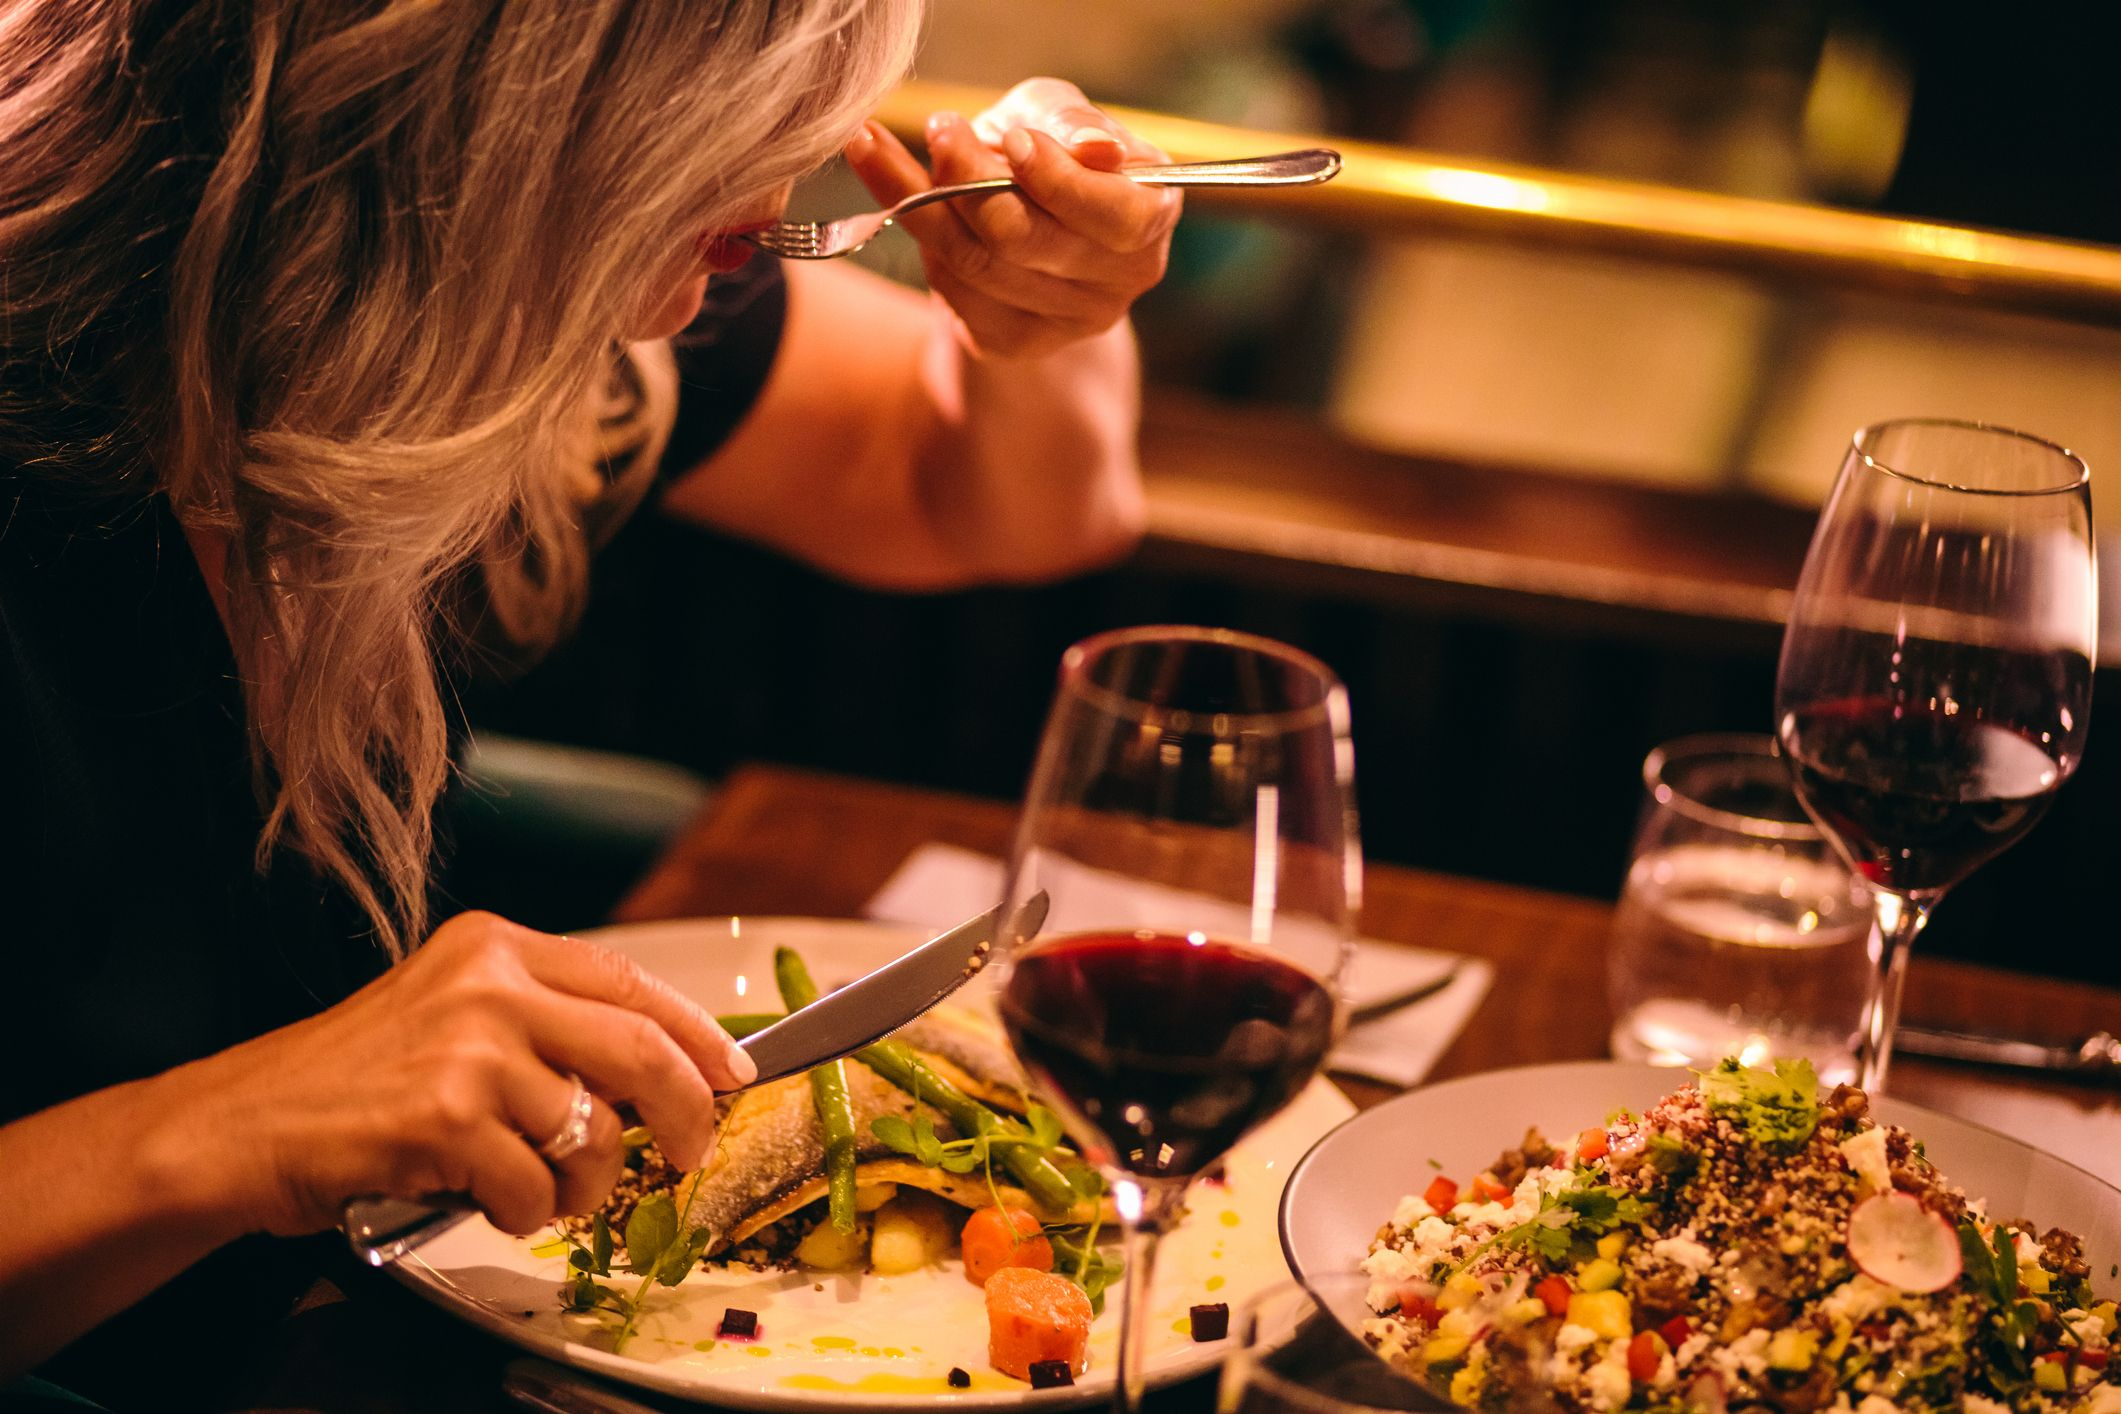 This is the best time to eat dinner to boost your heart health